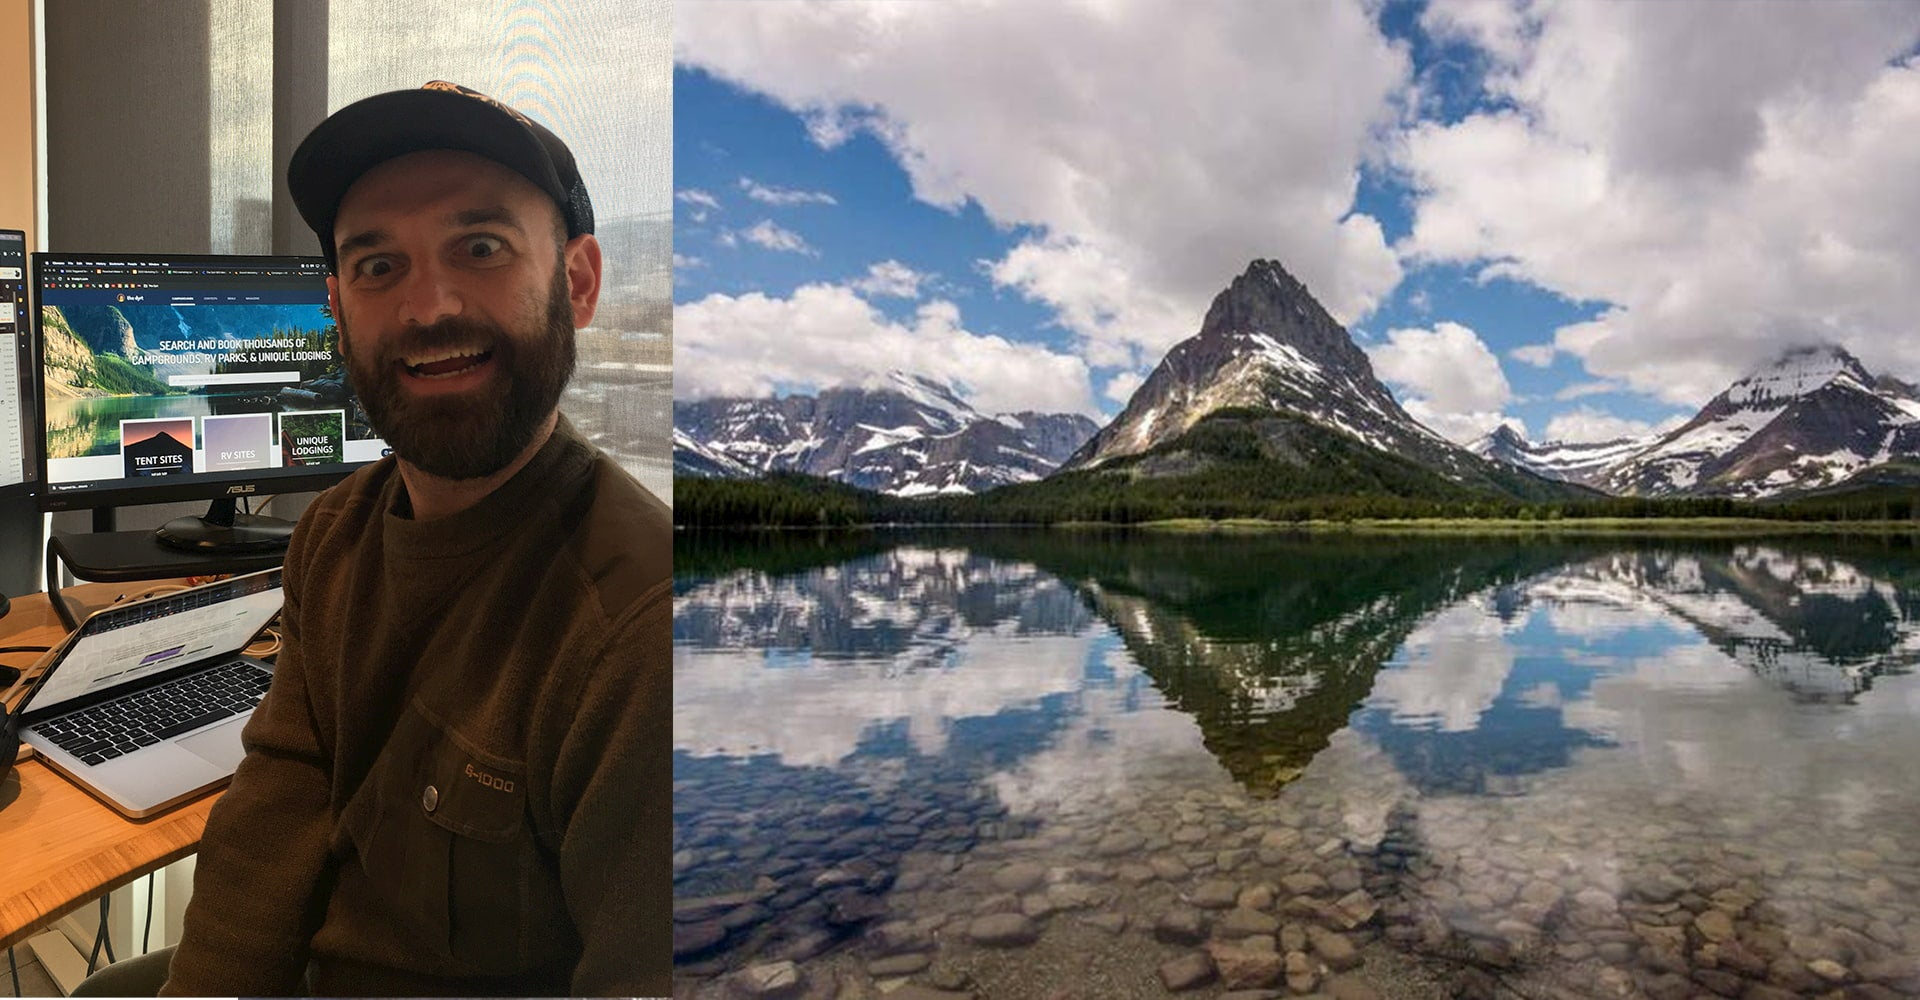 On the right photo of guy in a office, left panorama of a lake with snow dusted mountains the background and expansive blue sky with clouds.